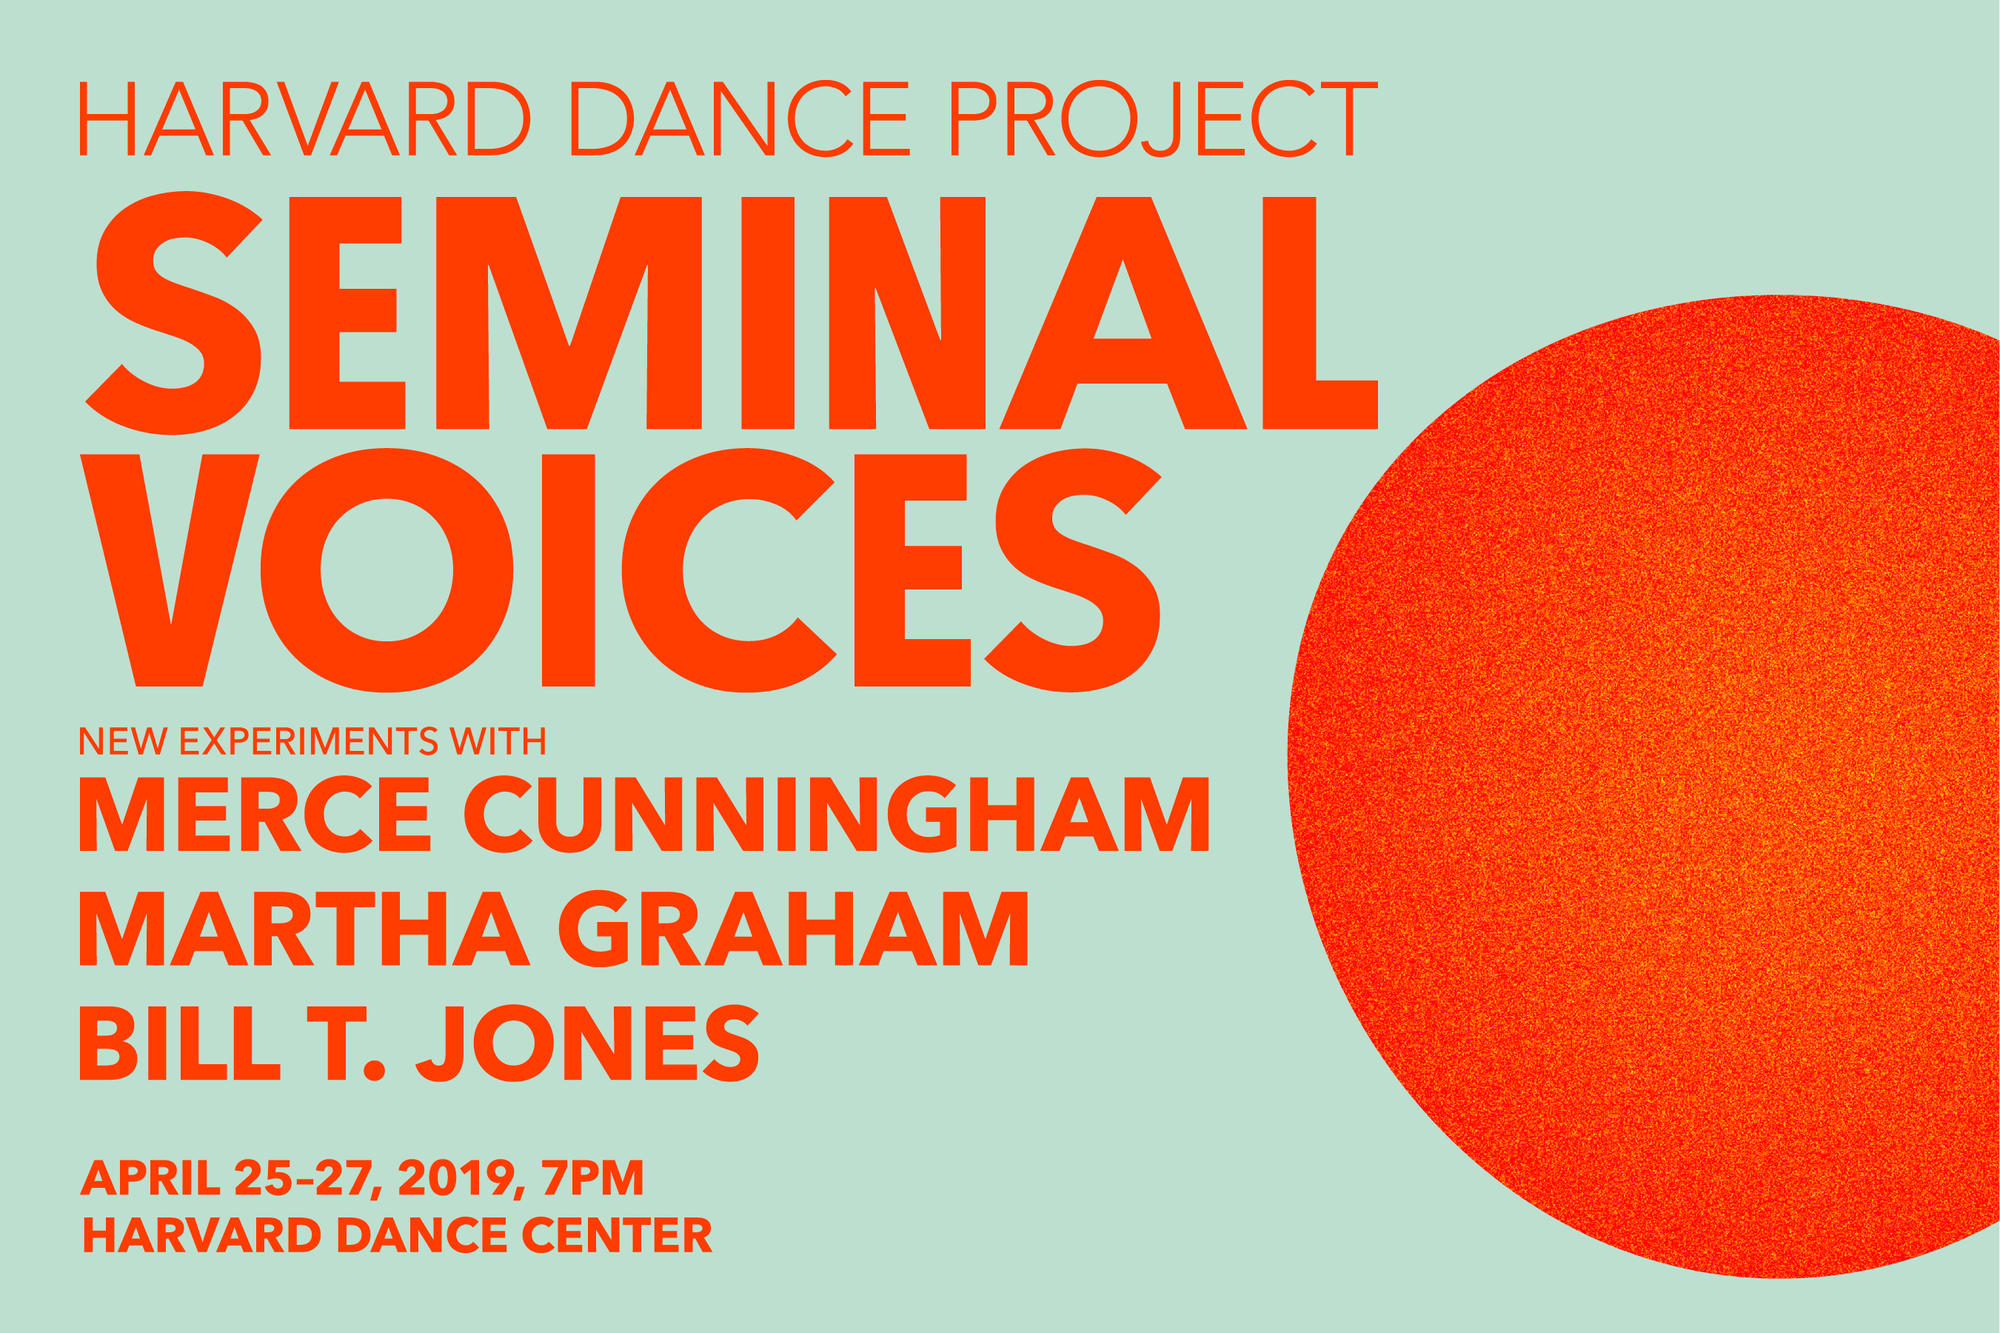 Harvard Dance Project in SEMINAL VOICES - image